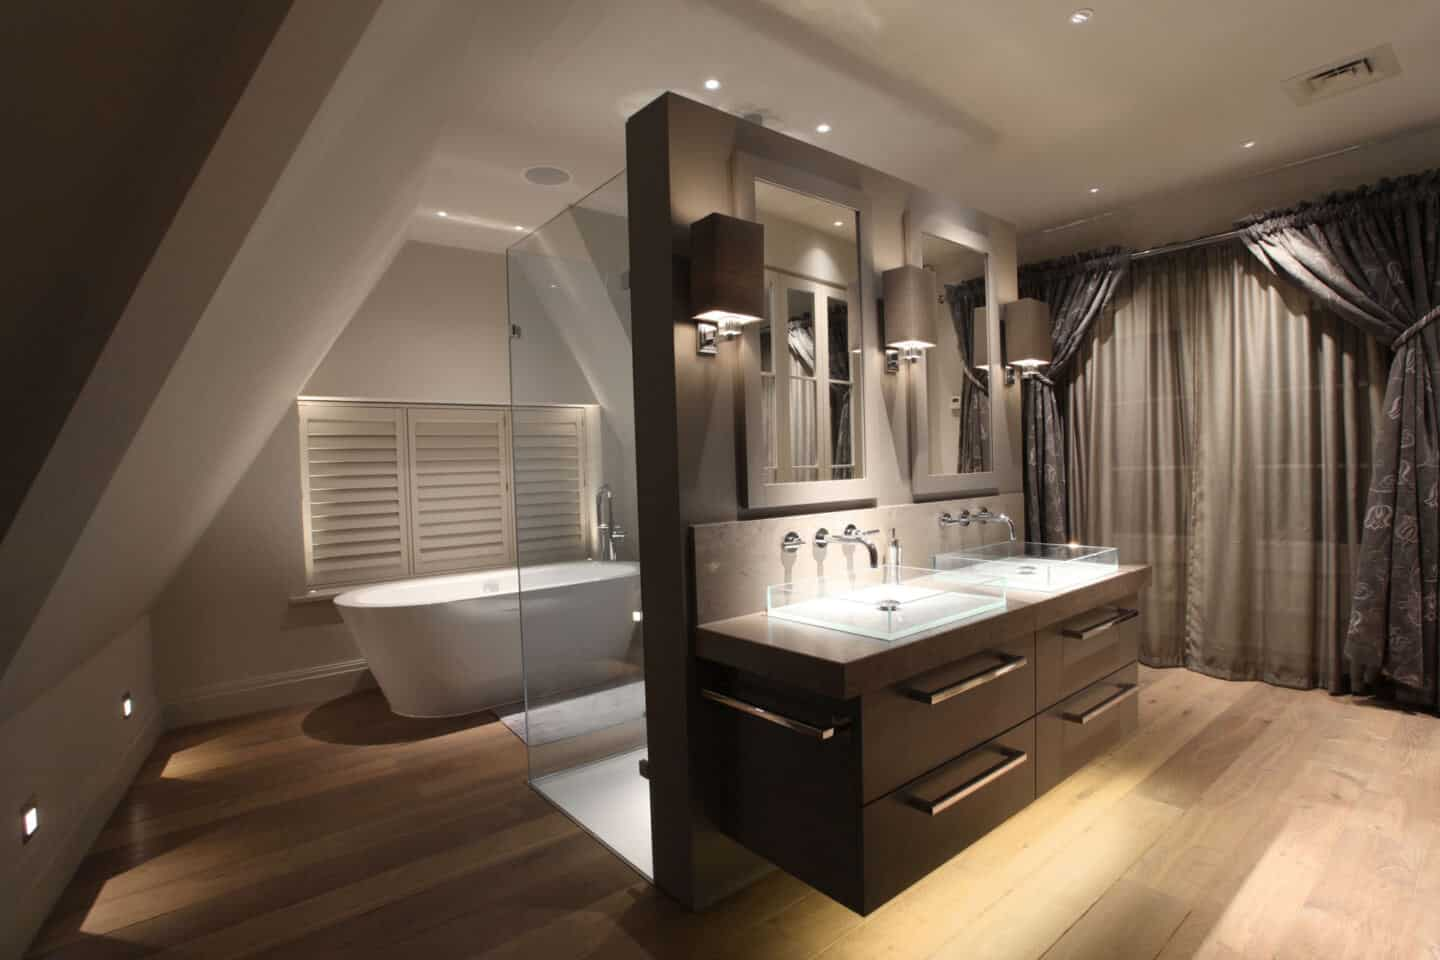 A luxury bathroom with double vanity, double shower and freestanding bath featuring layered lighting scheme by John Cullen Lighting.